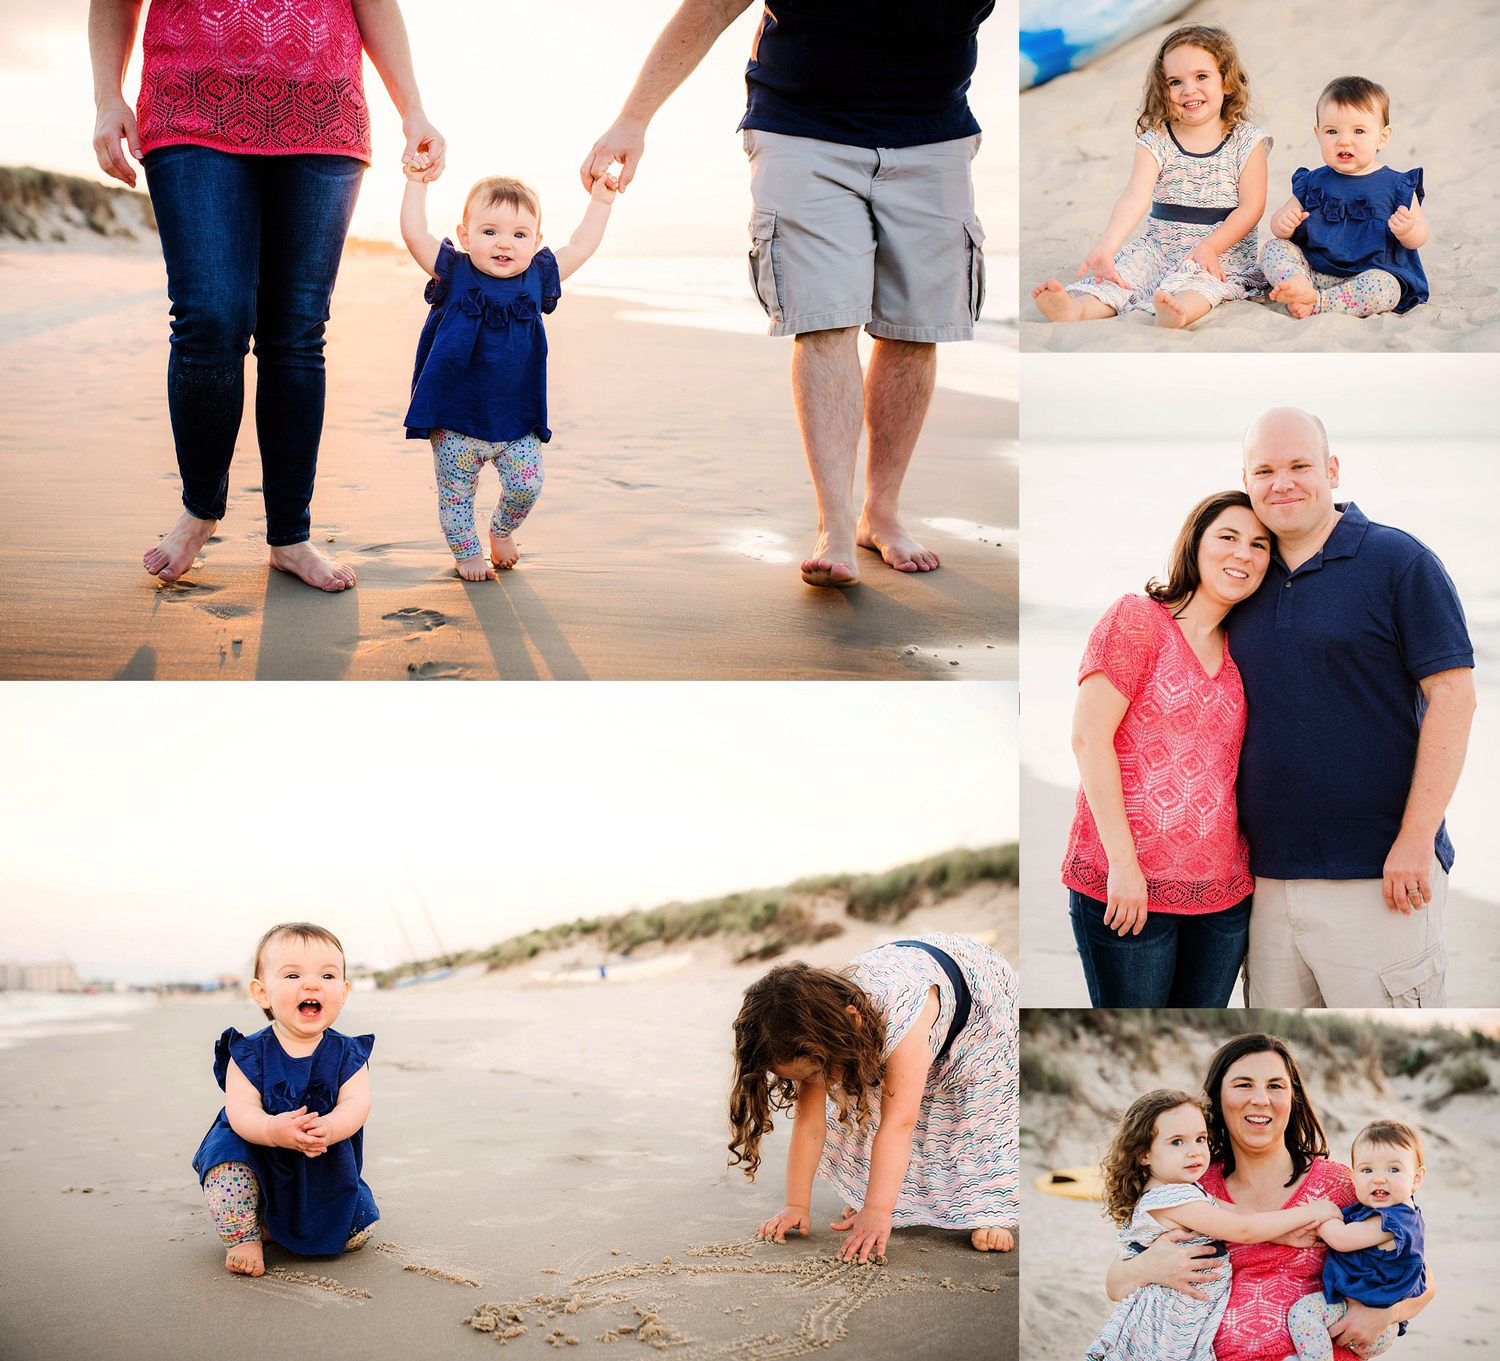 beautiful-sunset-family-photos-at-chick's-beach-by-virginia-beach's-premiere-lifestyle-family-photographer-melissa-bliss-photography.jpg